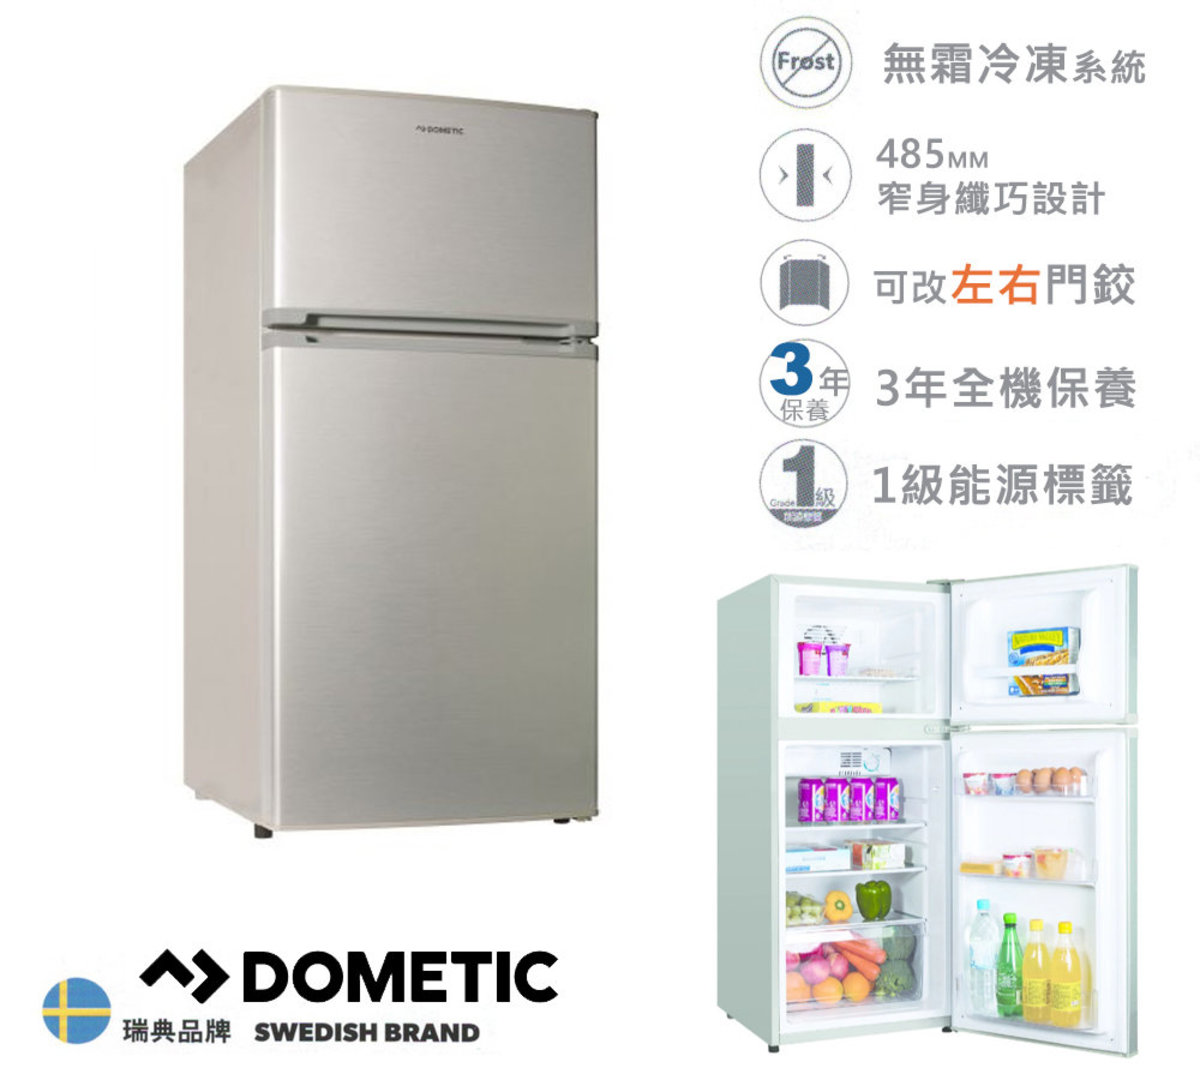 2 Door Refrigerator DX1280